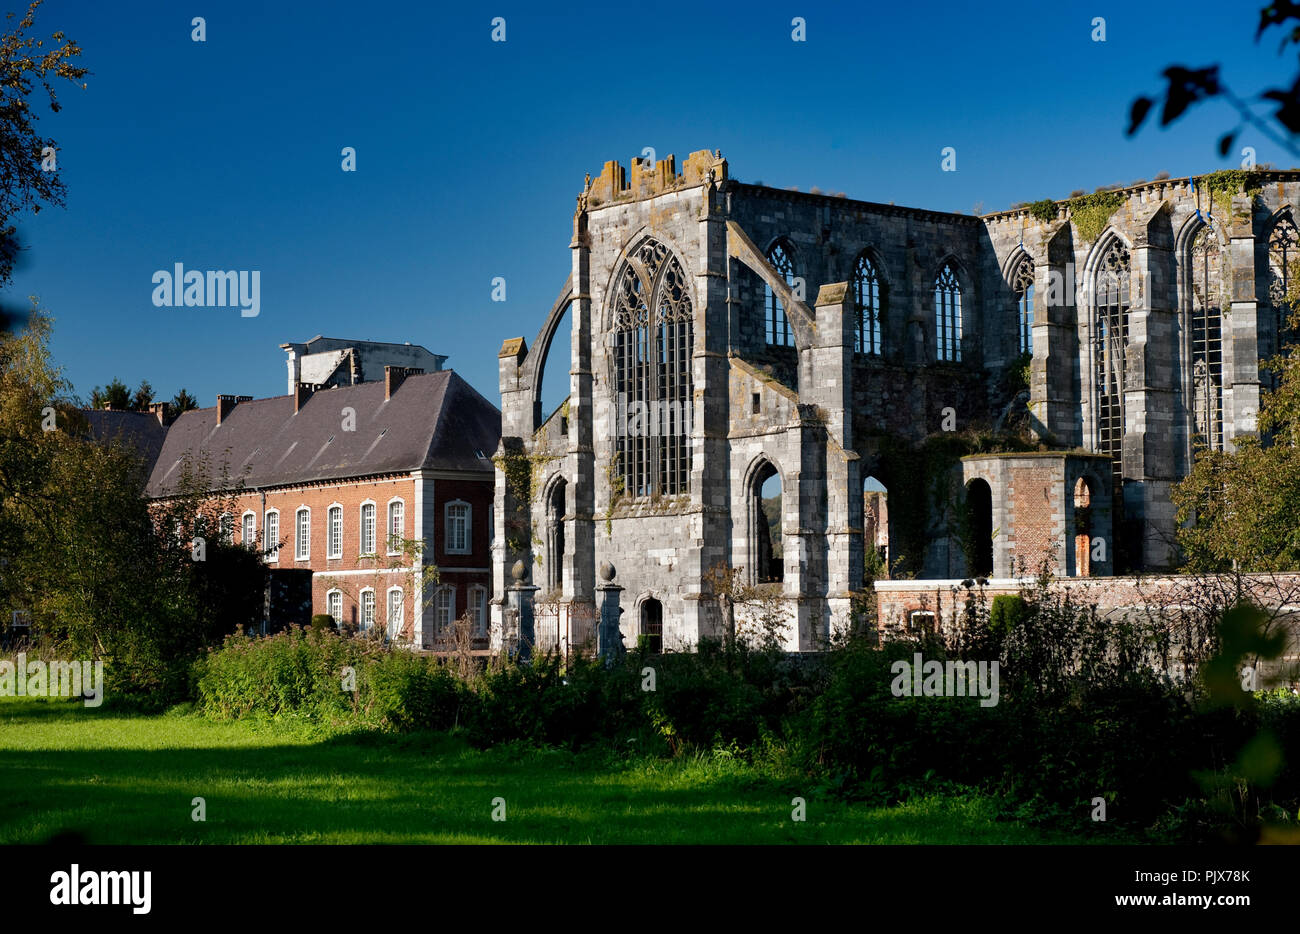 The ruin of the Cistercian Abbey of Aulne in Gozée, Leernes, founded in the 8th Century (Belgium, 24/10/2011) Stock Photo